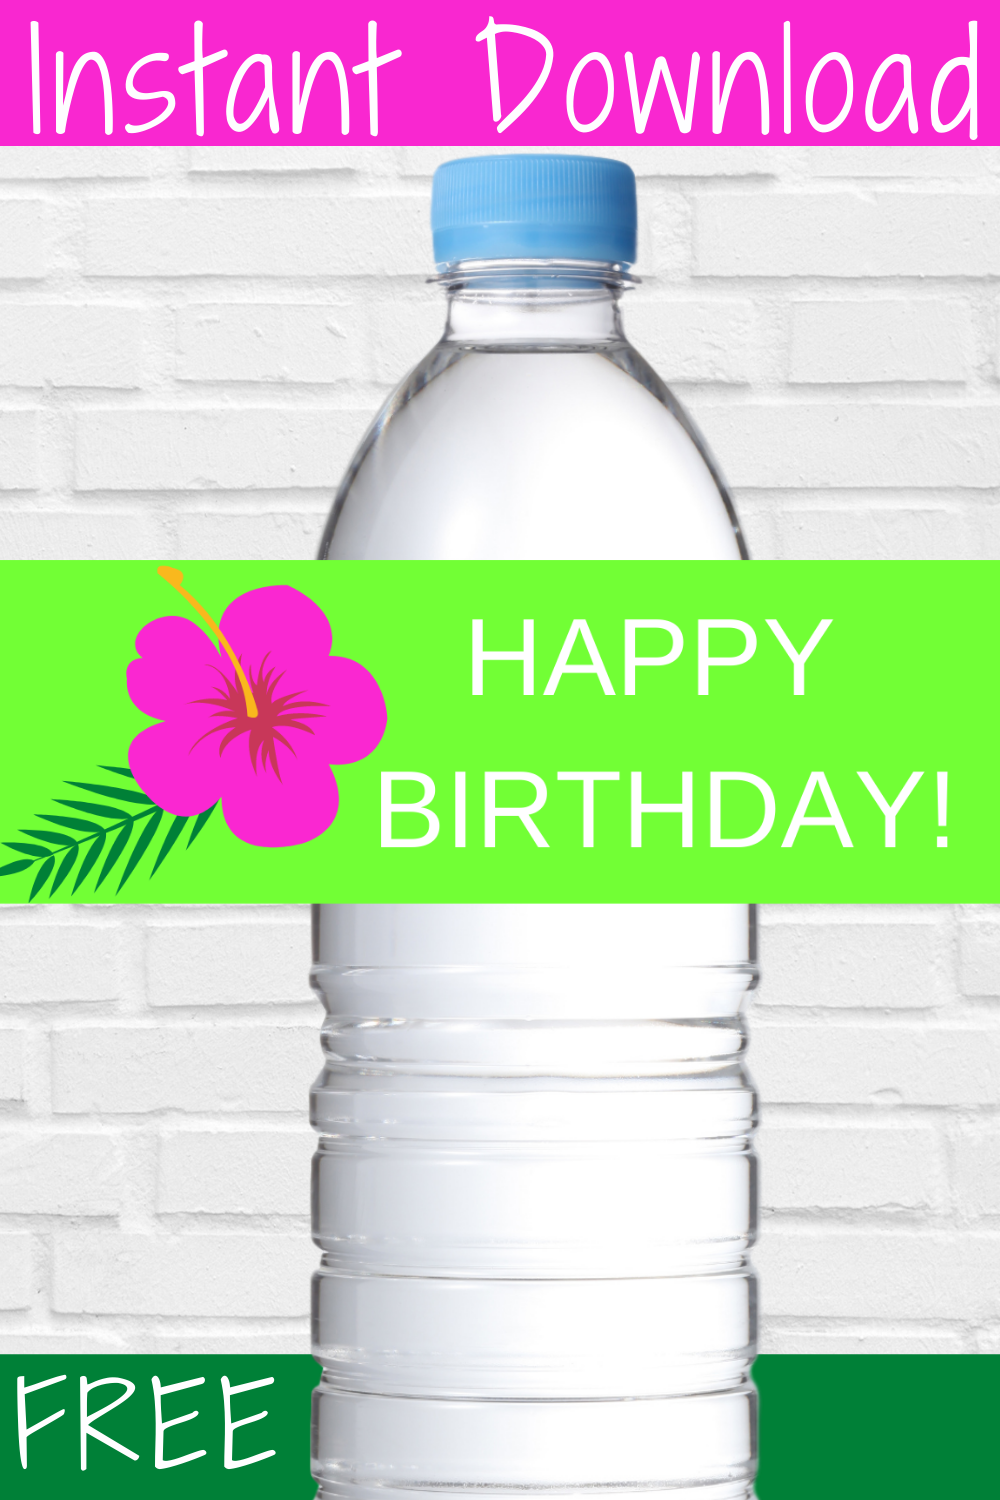 free download: tropical water bottle decorations for birthday party